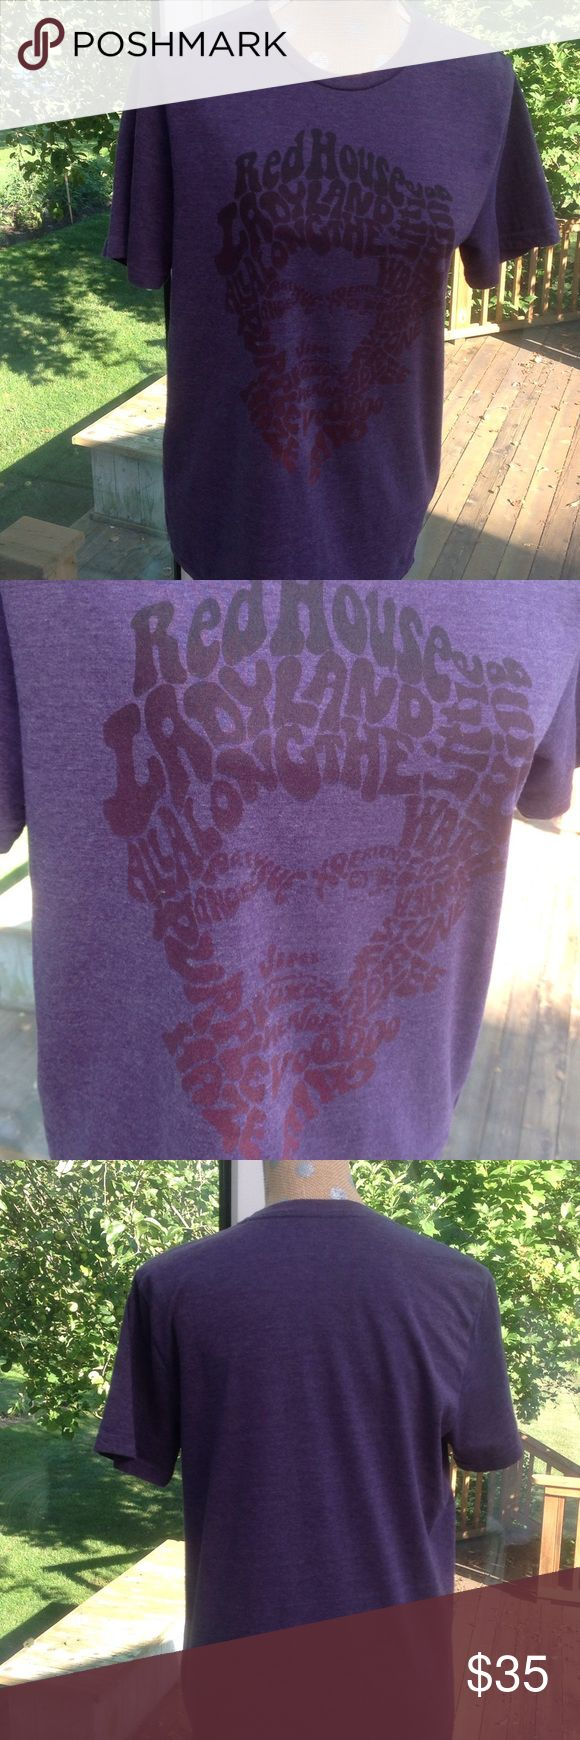 Jimi Hendrix Tee! This  purple cotton t shirt features his songs outlining his face: Purple  Haze, Voodoo, Red House, etc. Karl Ferris Shirts Tees - Short Sleeve